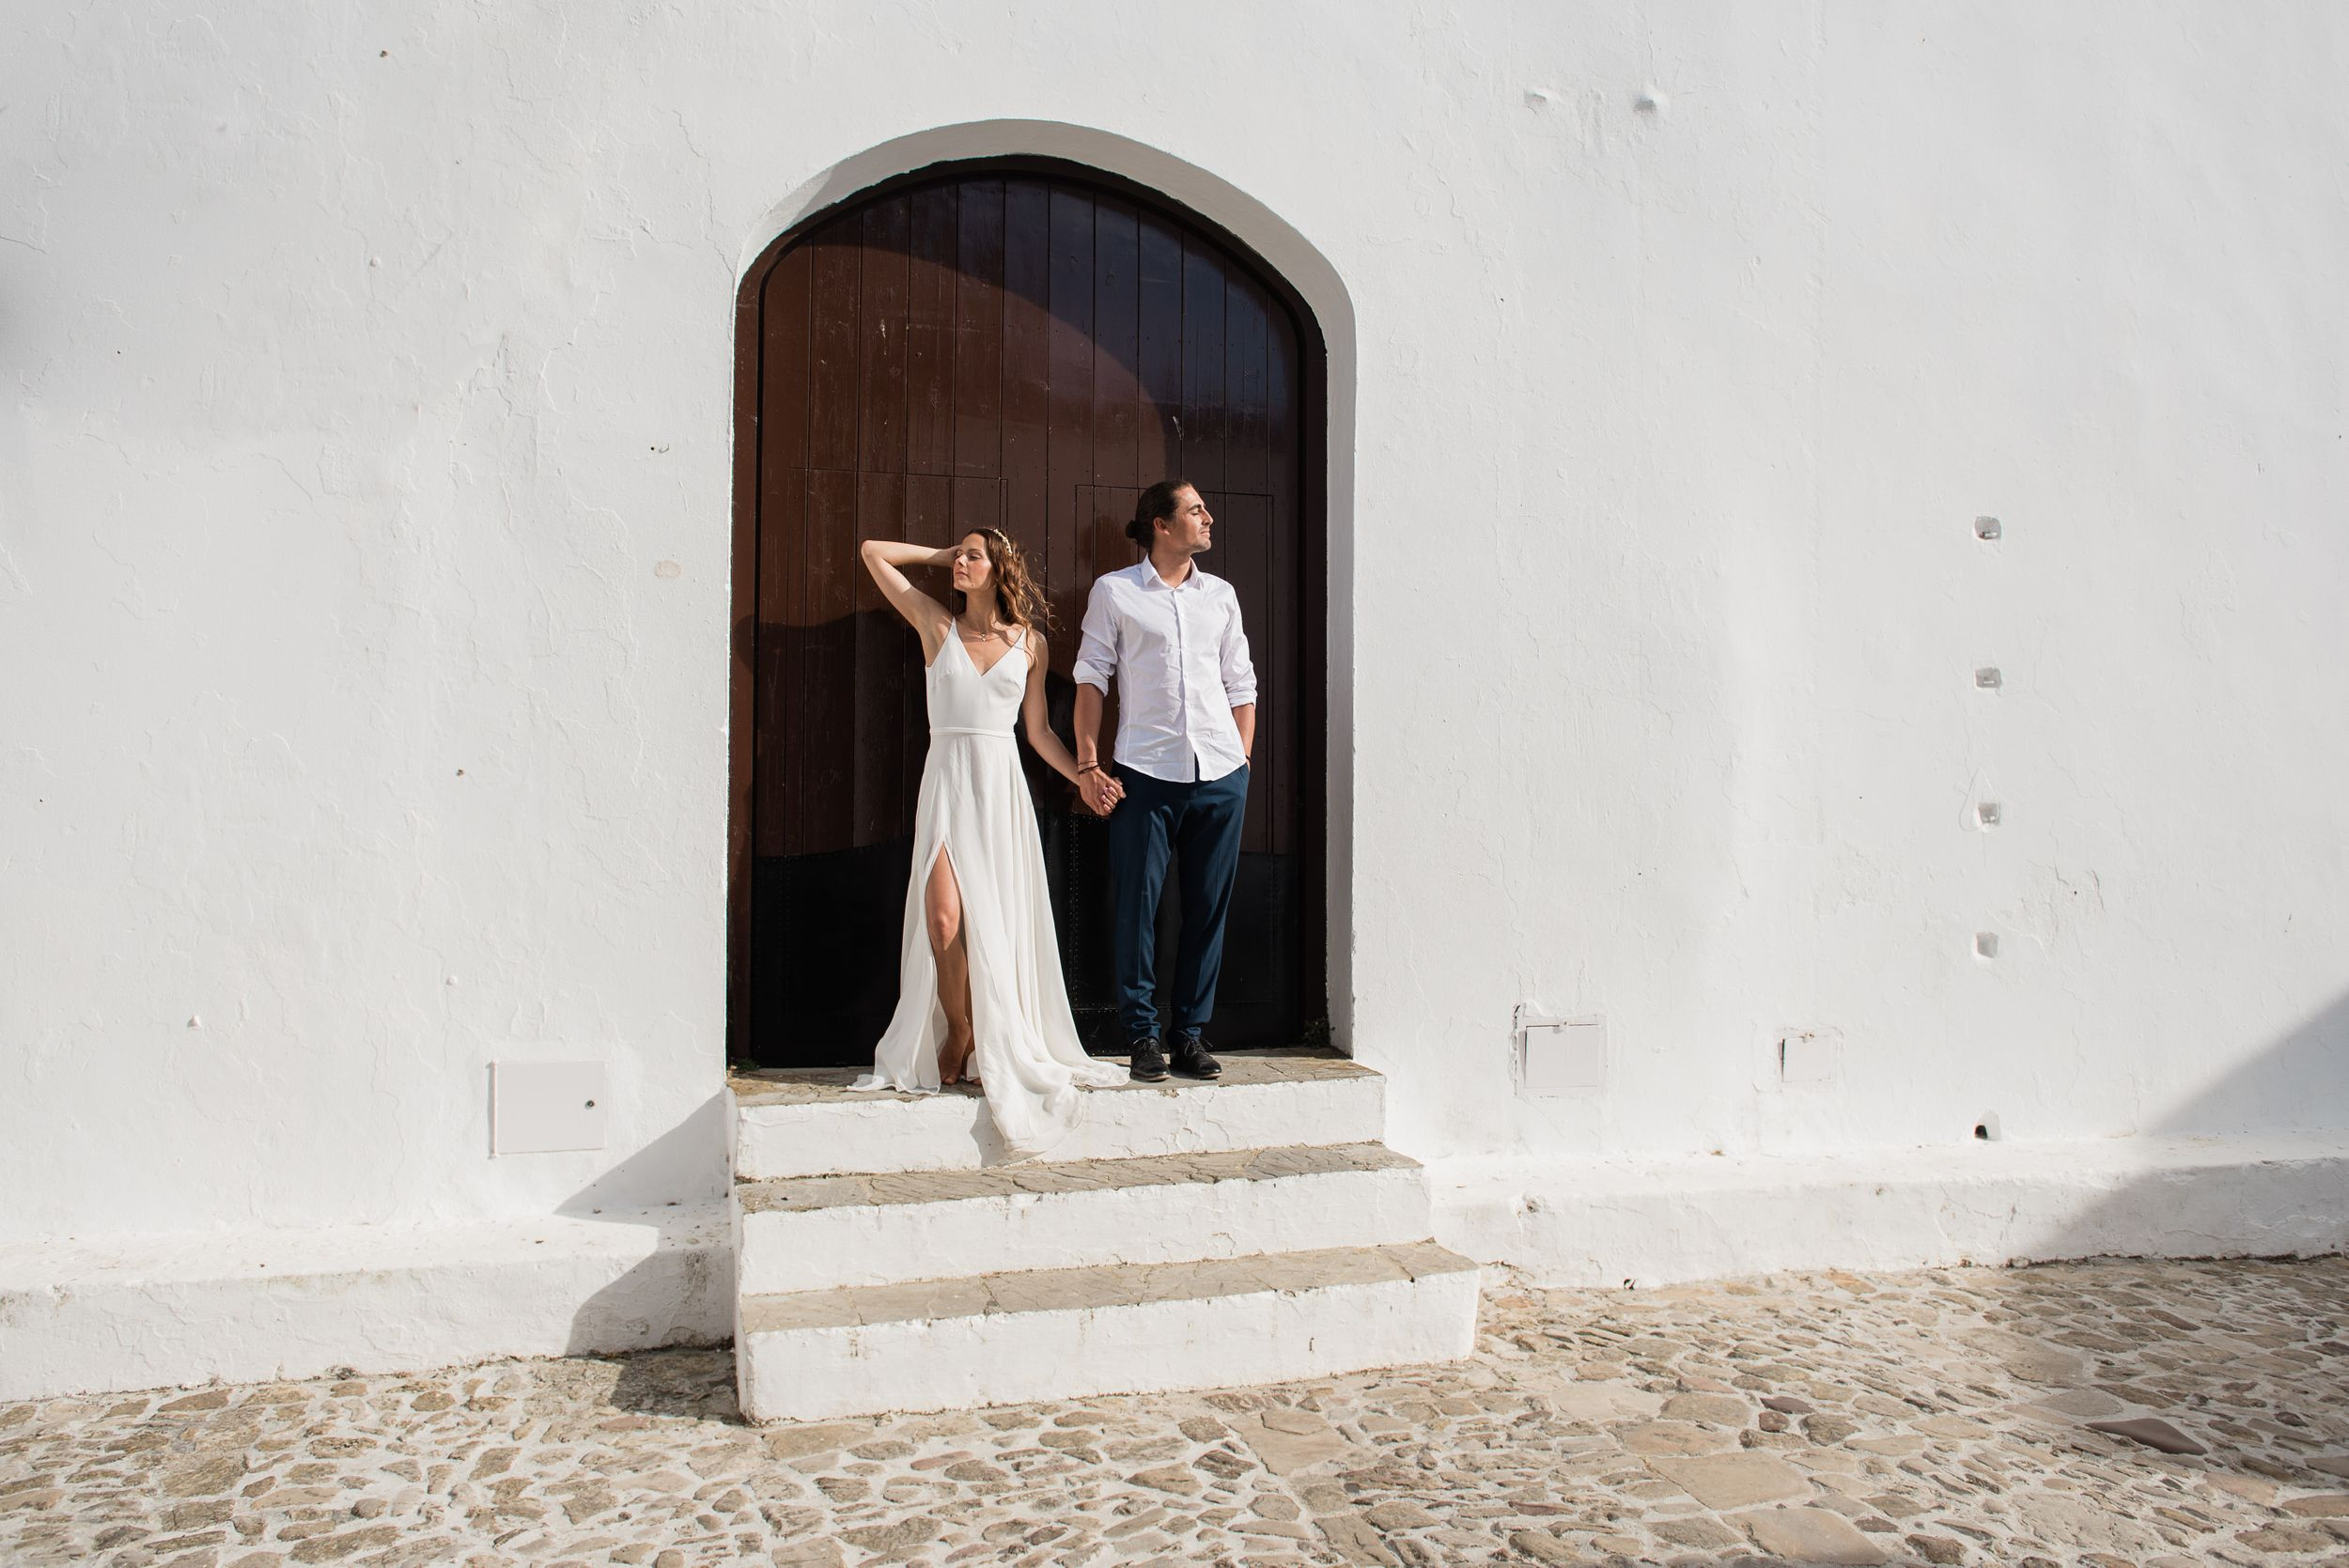 Engagement session in Castellar